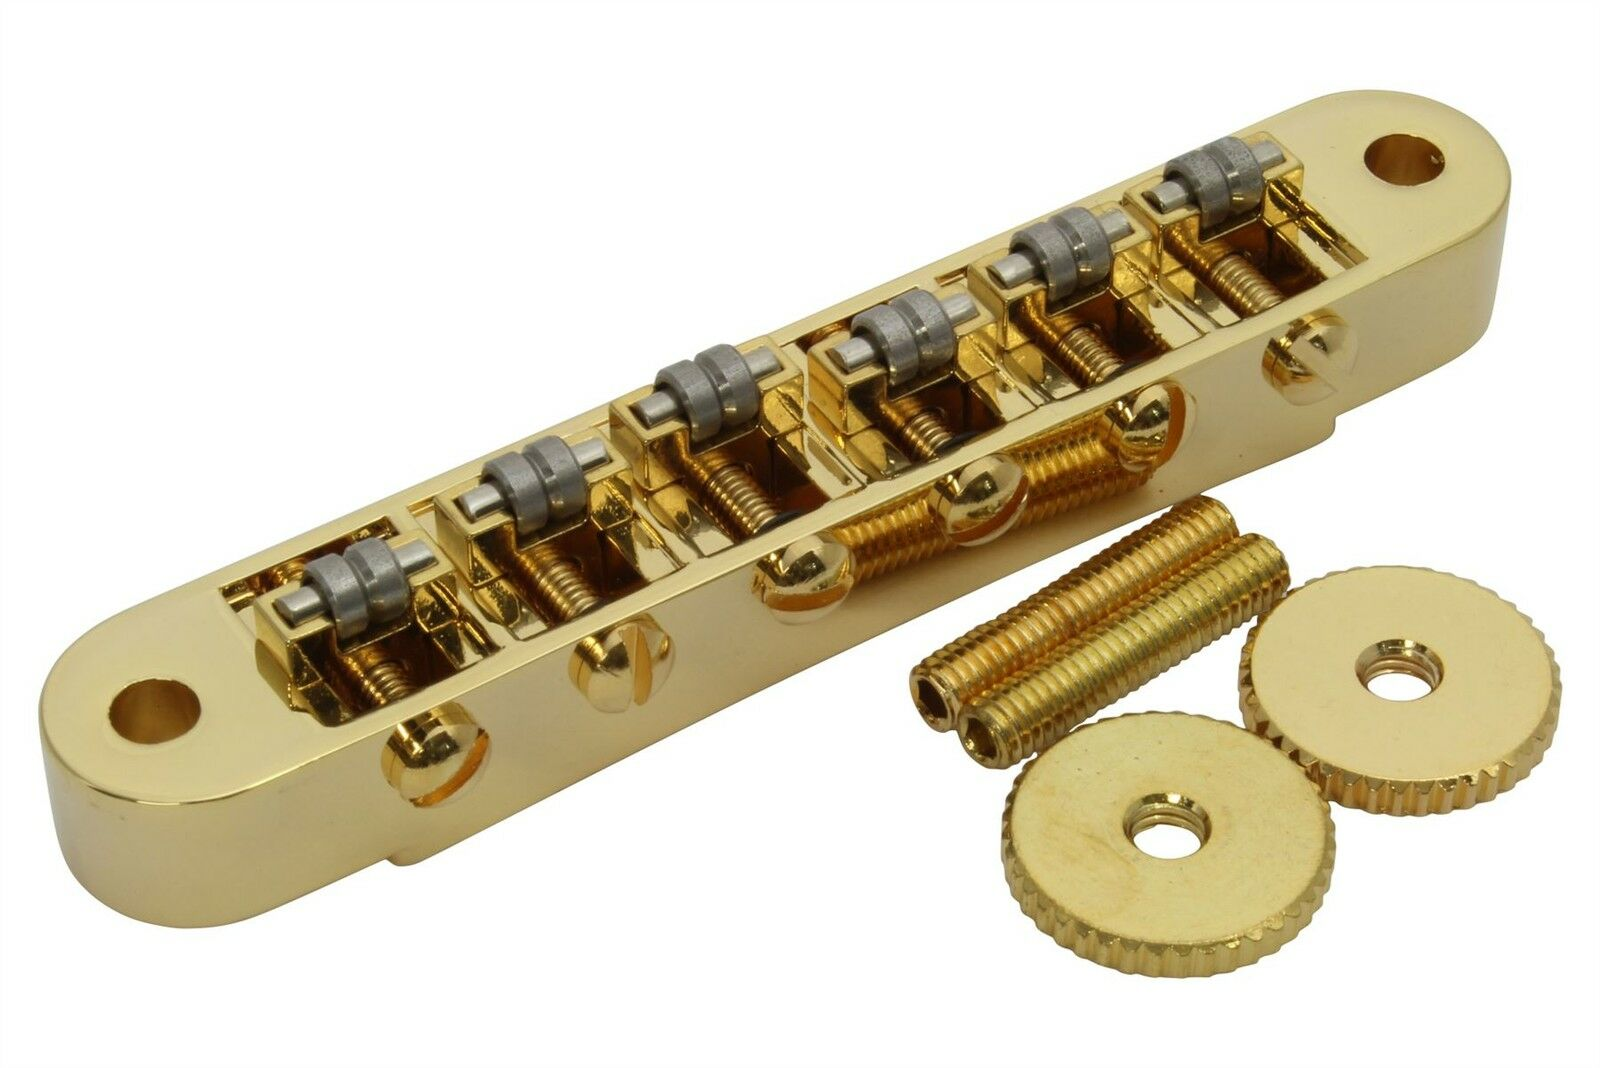 Roller bridge replacement for abr-1 style bridge?   The Gear